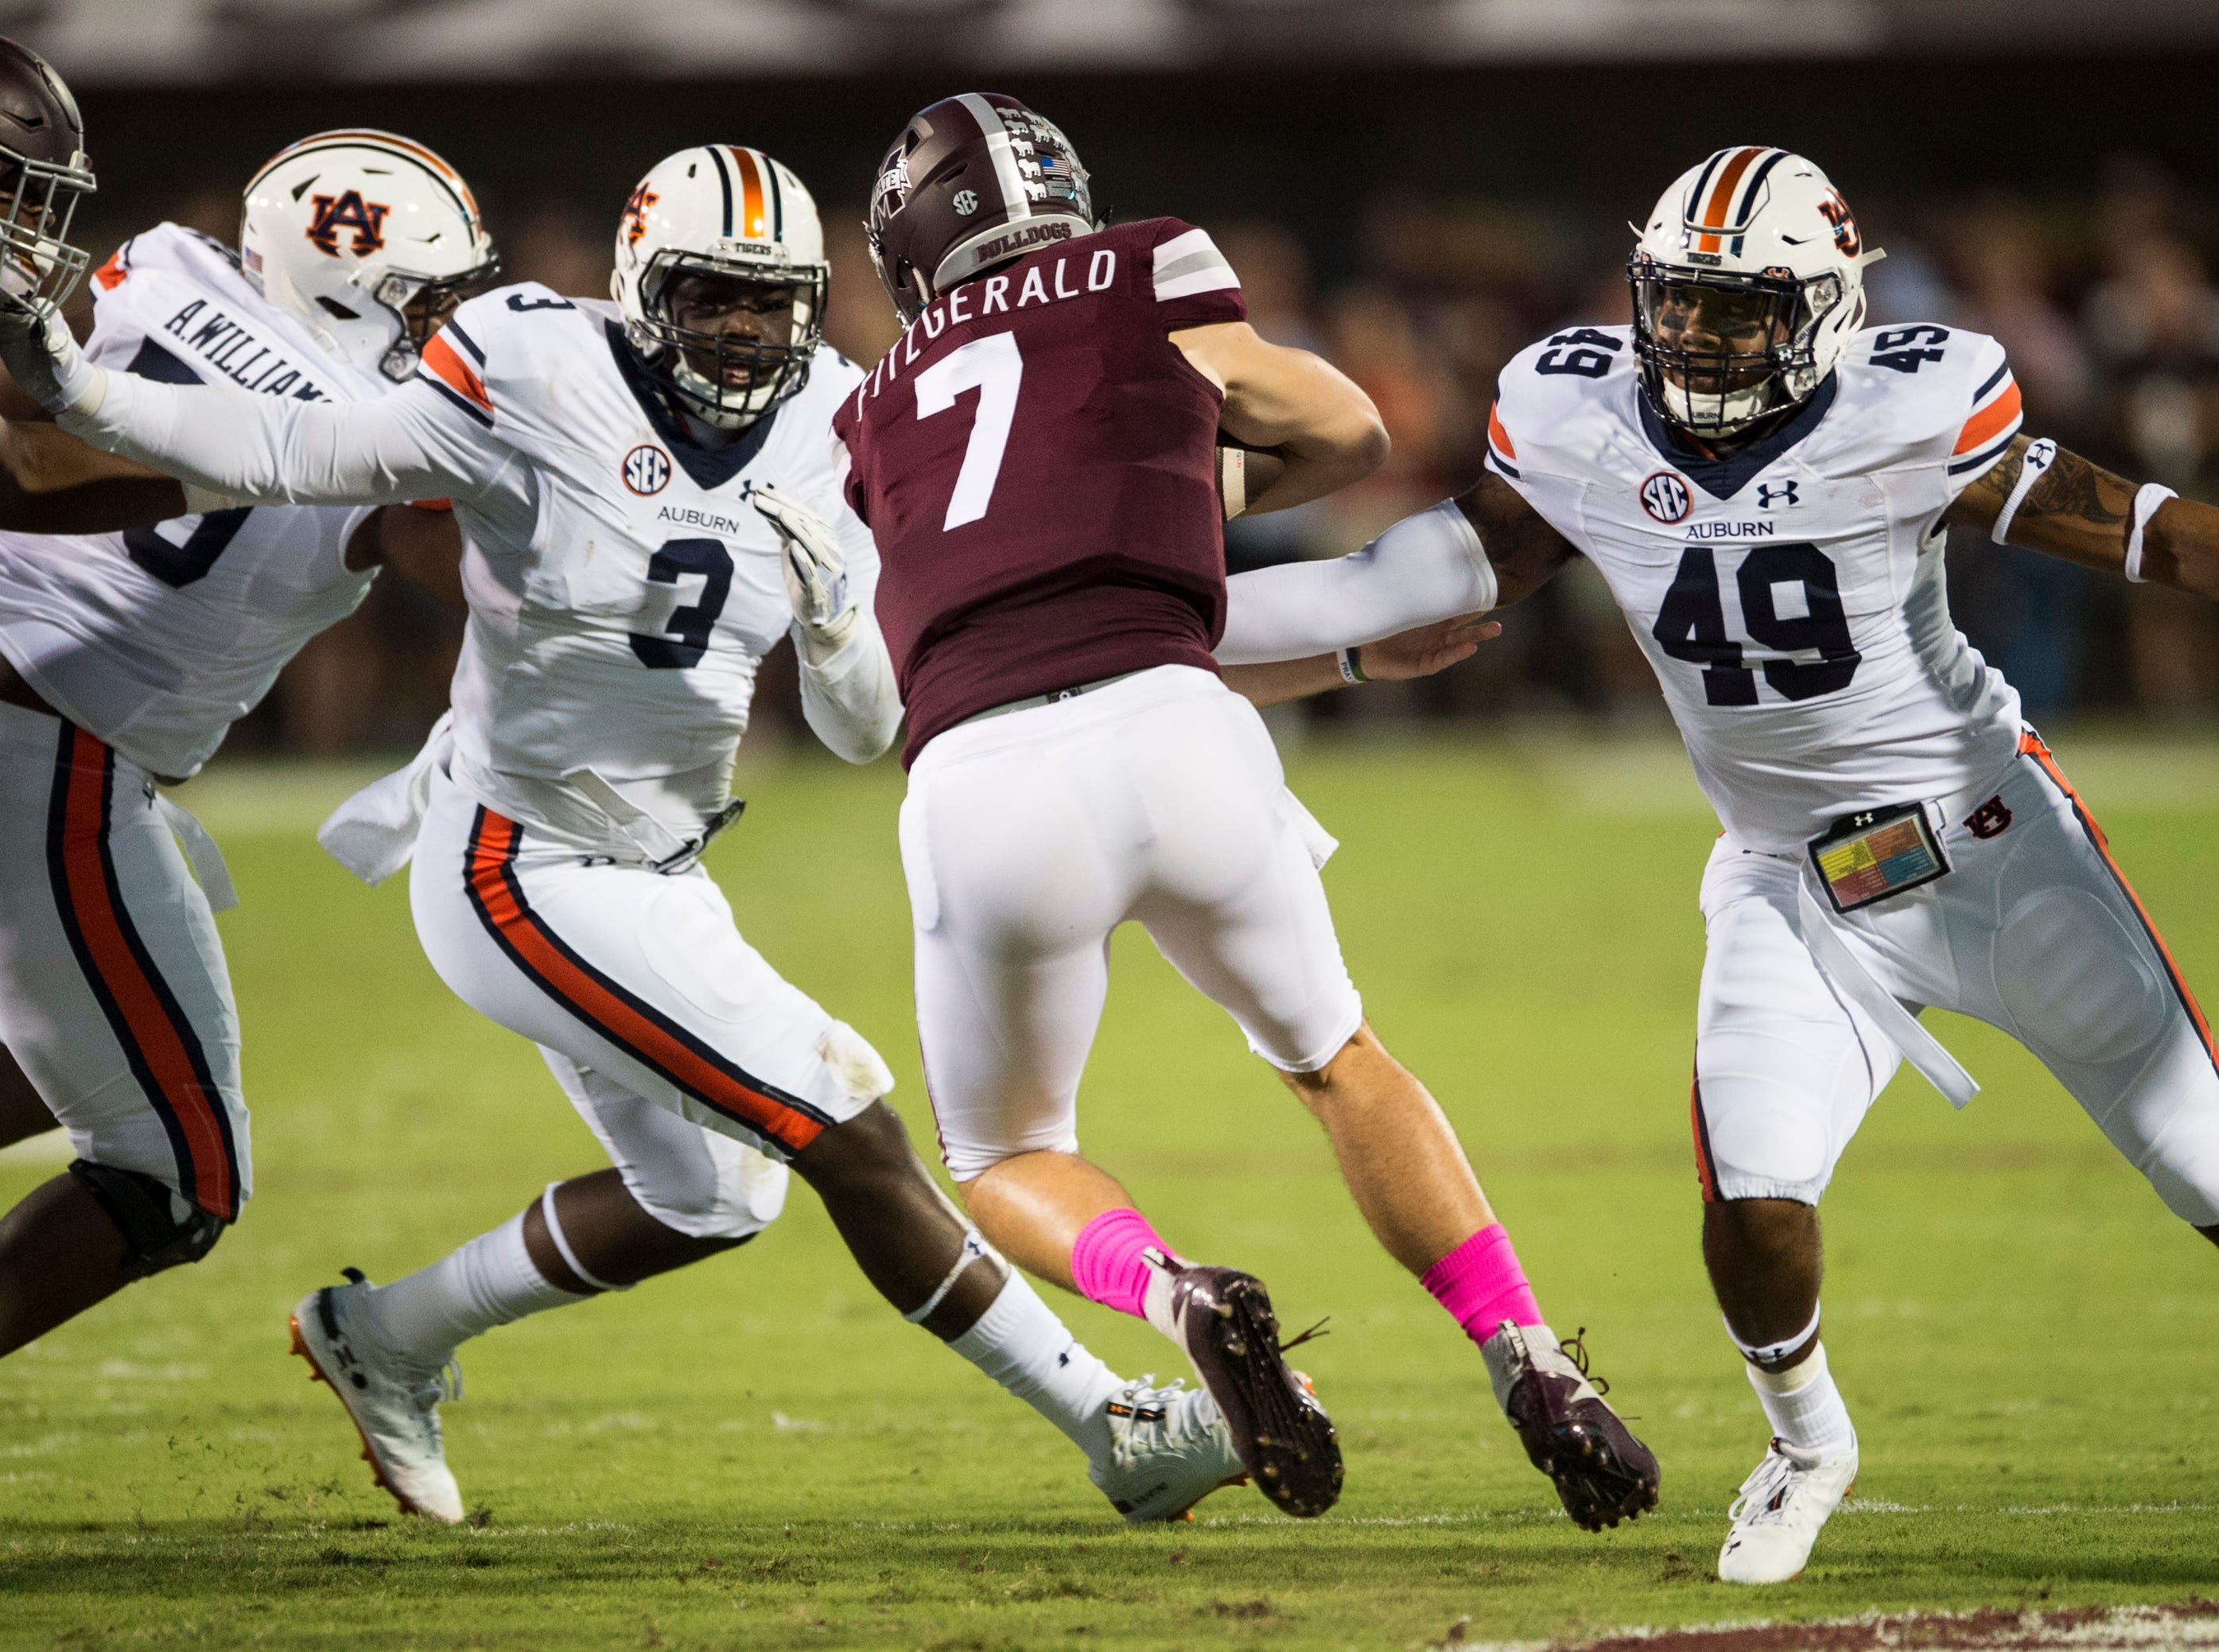 Mississippi State's Nick Fitzgerald (7) runs the ball up the middle against  Auburn at Davis Wade Stadium in Starkville, Miss., on Saturday, Oct. 6, 2018. Mississippi State leads Auburn 13-3 at halftime.